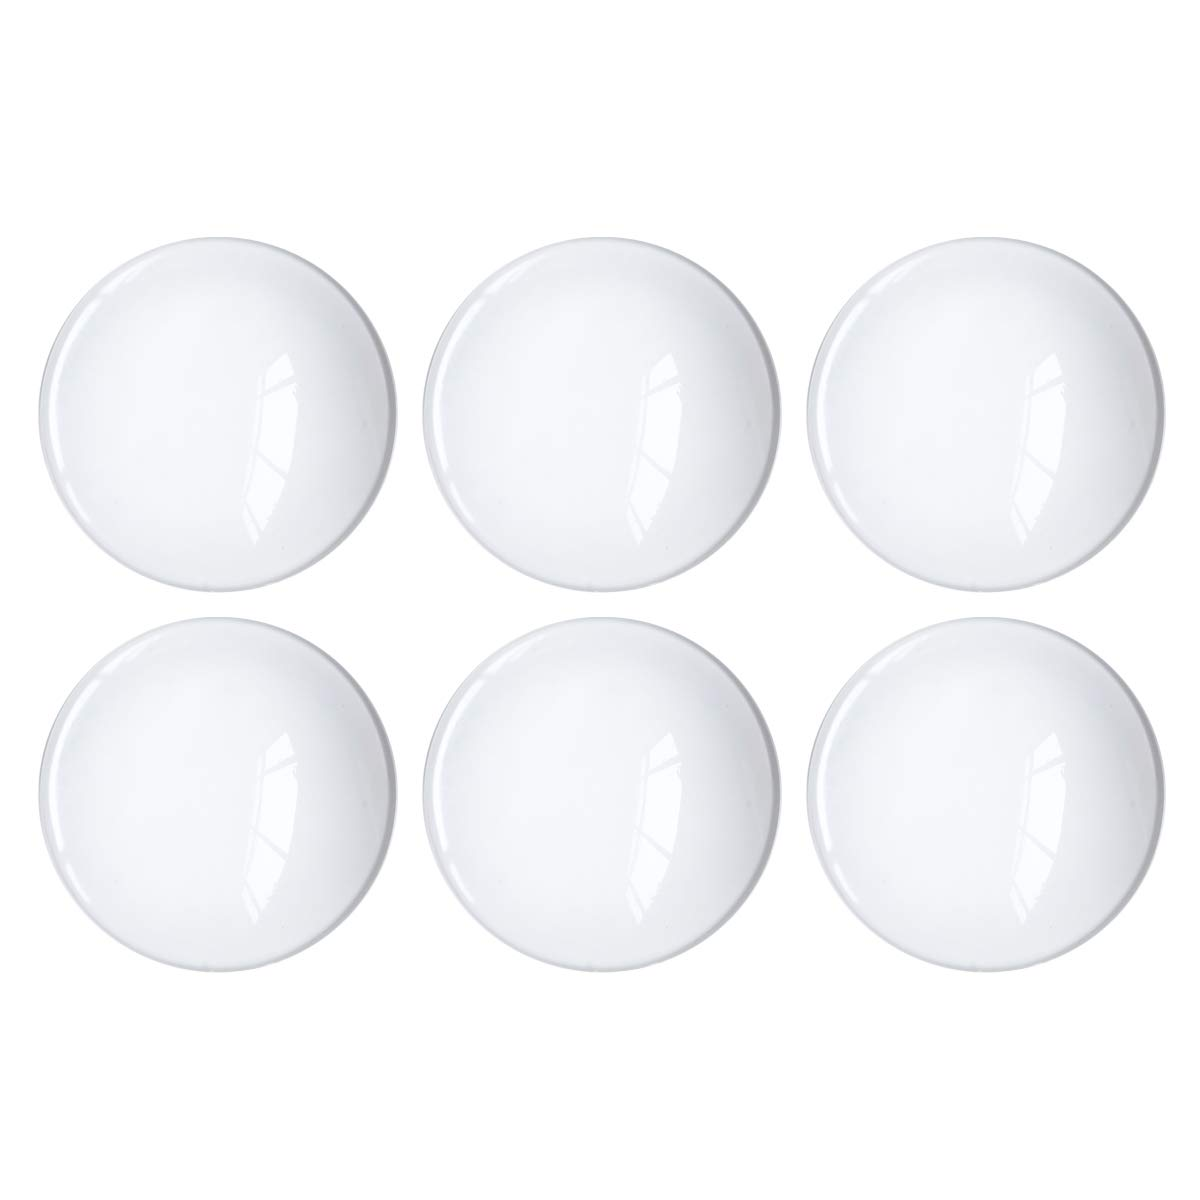 Glass Cabochon 50mm for Jewelry Making 10 PCS Round Dome Cabochons with Flat Backs Glass Dome Tiles Clear Cameo for Pendants Magnets and Crafts (10 PCS, 2 INCH) by NOBBEE